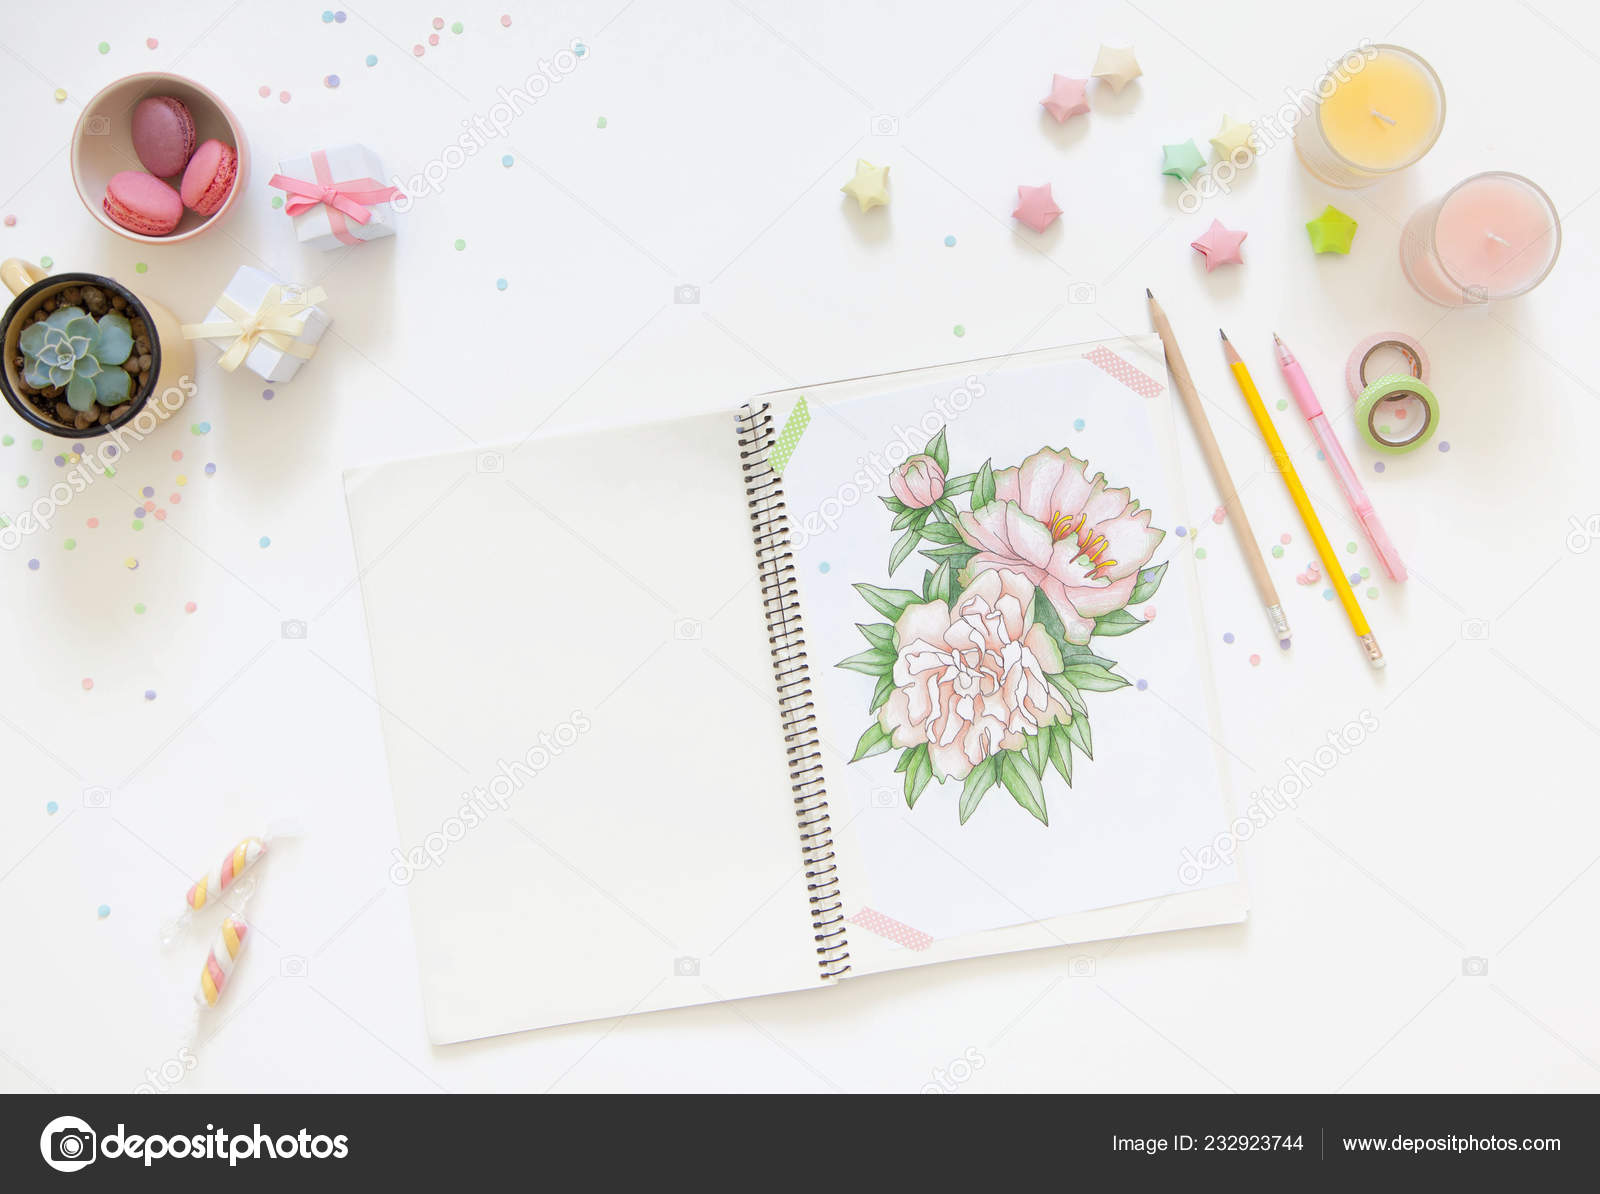 Concept Women Hobbies Leisure Drawing Simple Colored Pencils Stock